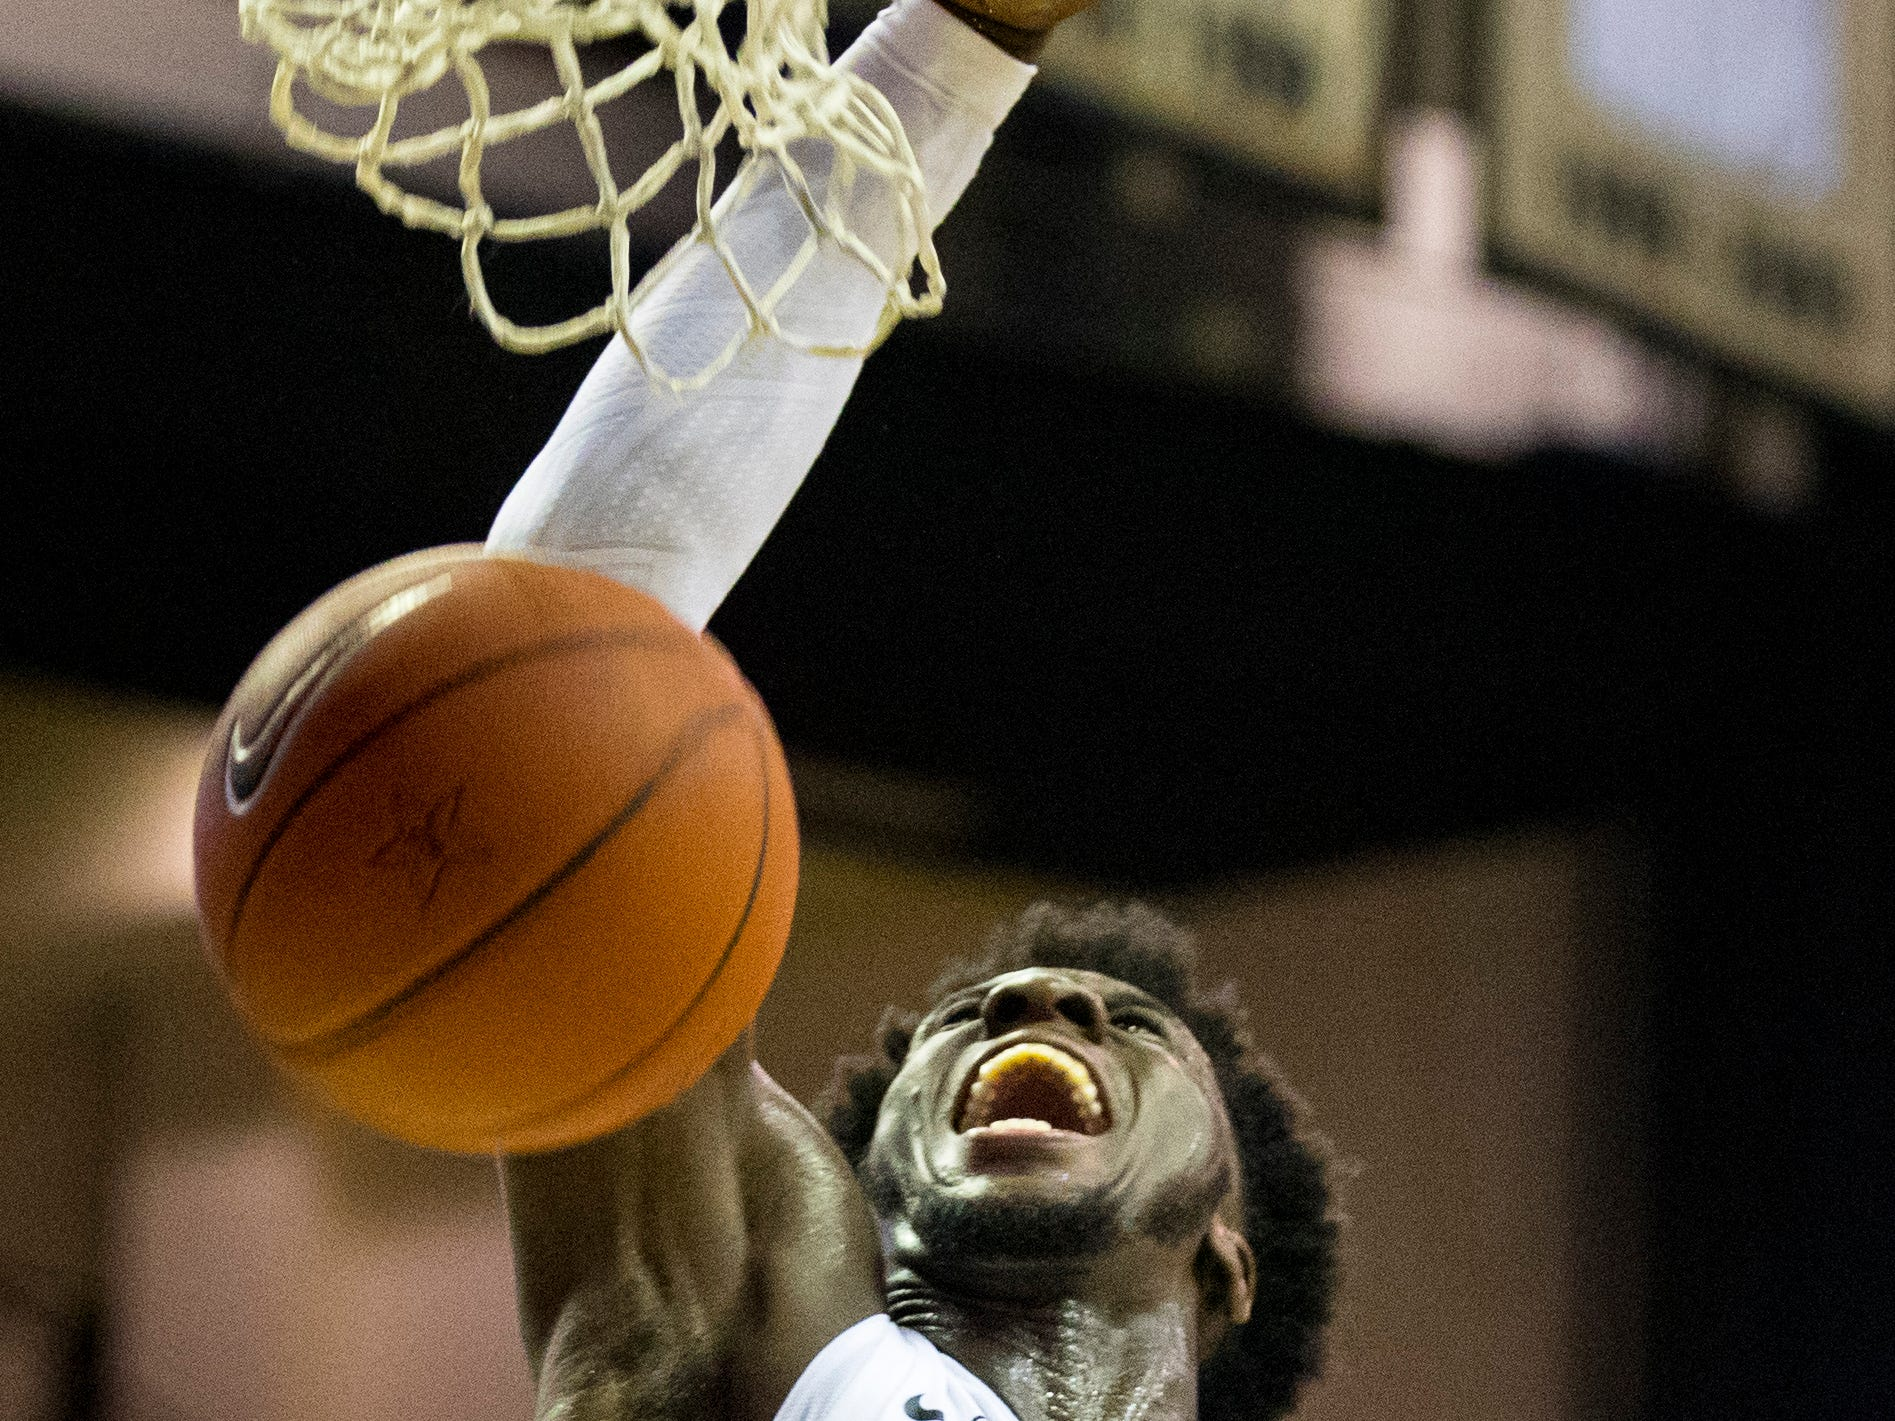 Vanderbilt's Simsola Shittu (11) yells as he dunks during Vanderbilt's game against Winthrop at Memorial Gymnasium in Nashville on Tuesday, Nov. 6, 2018.